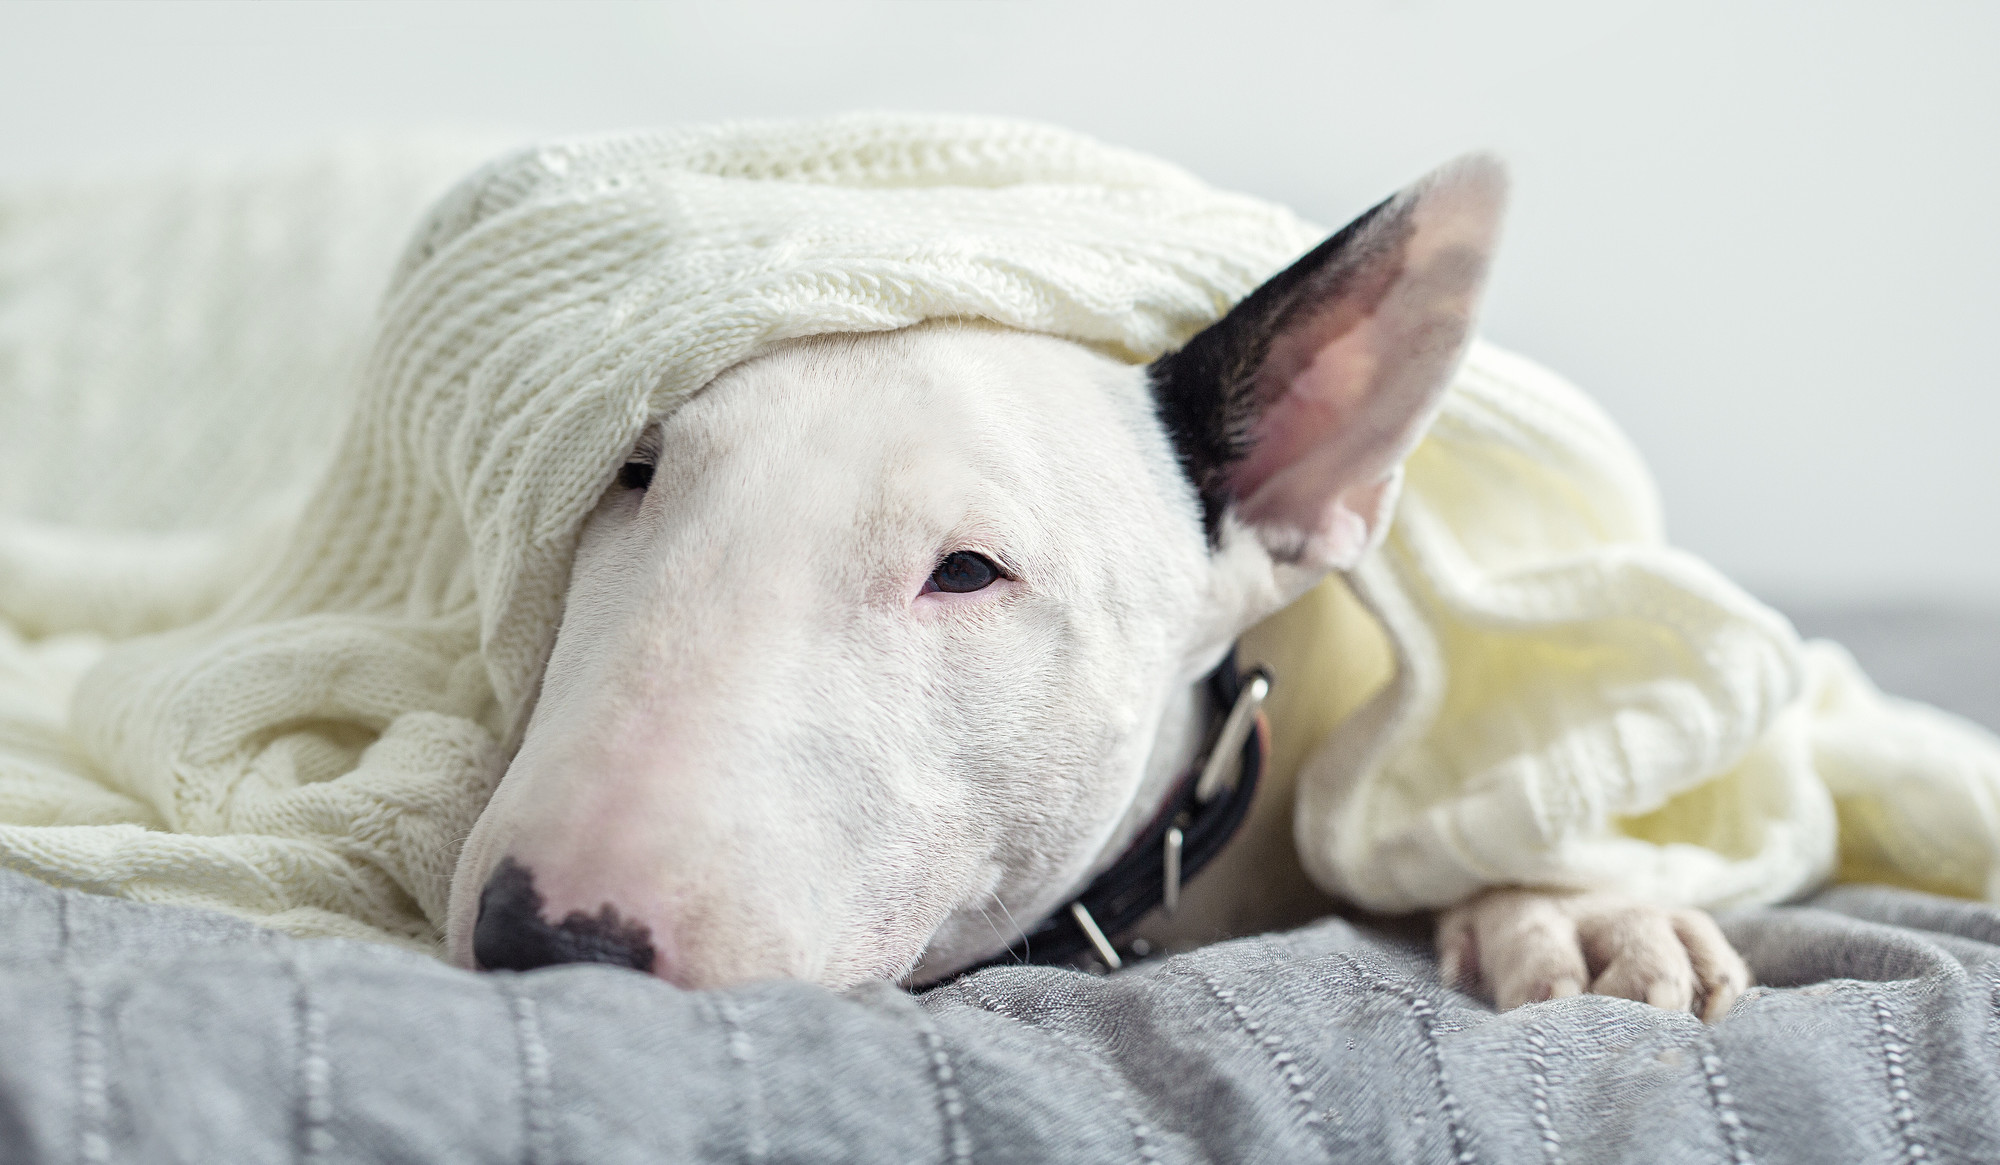 English bull terrier in blankets